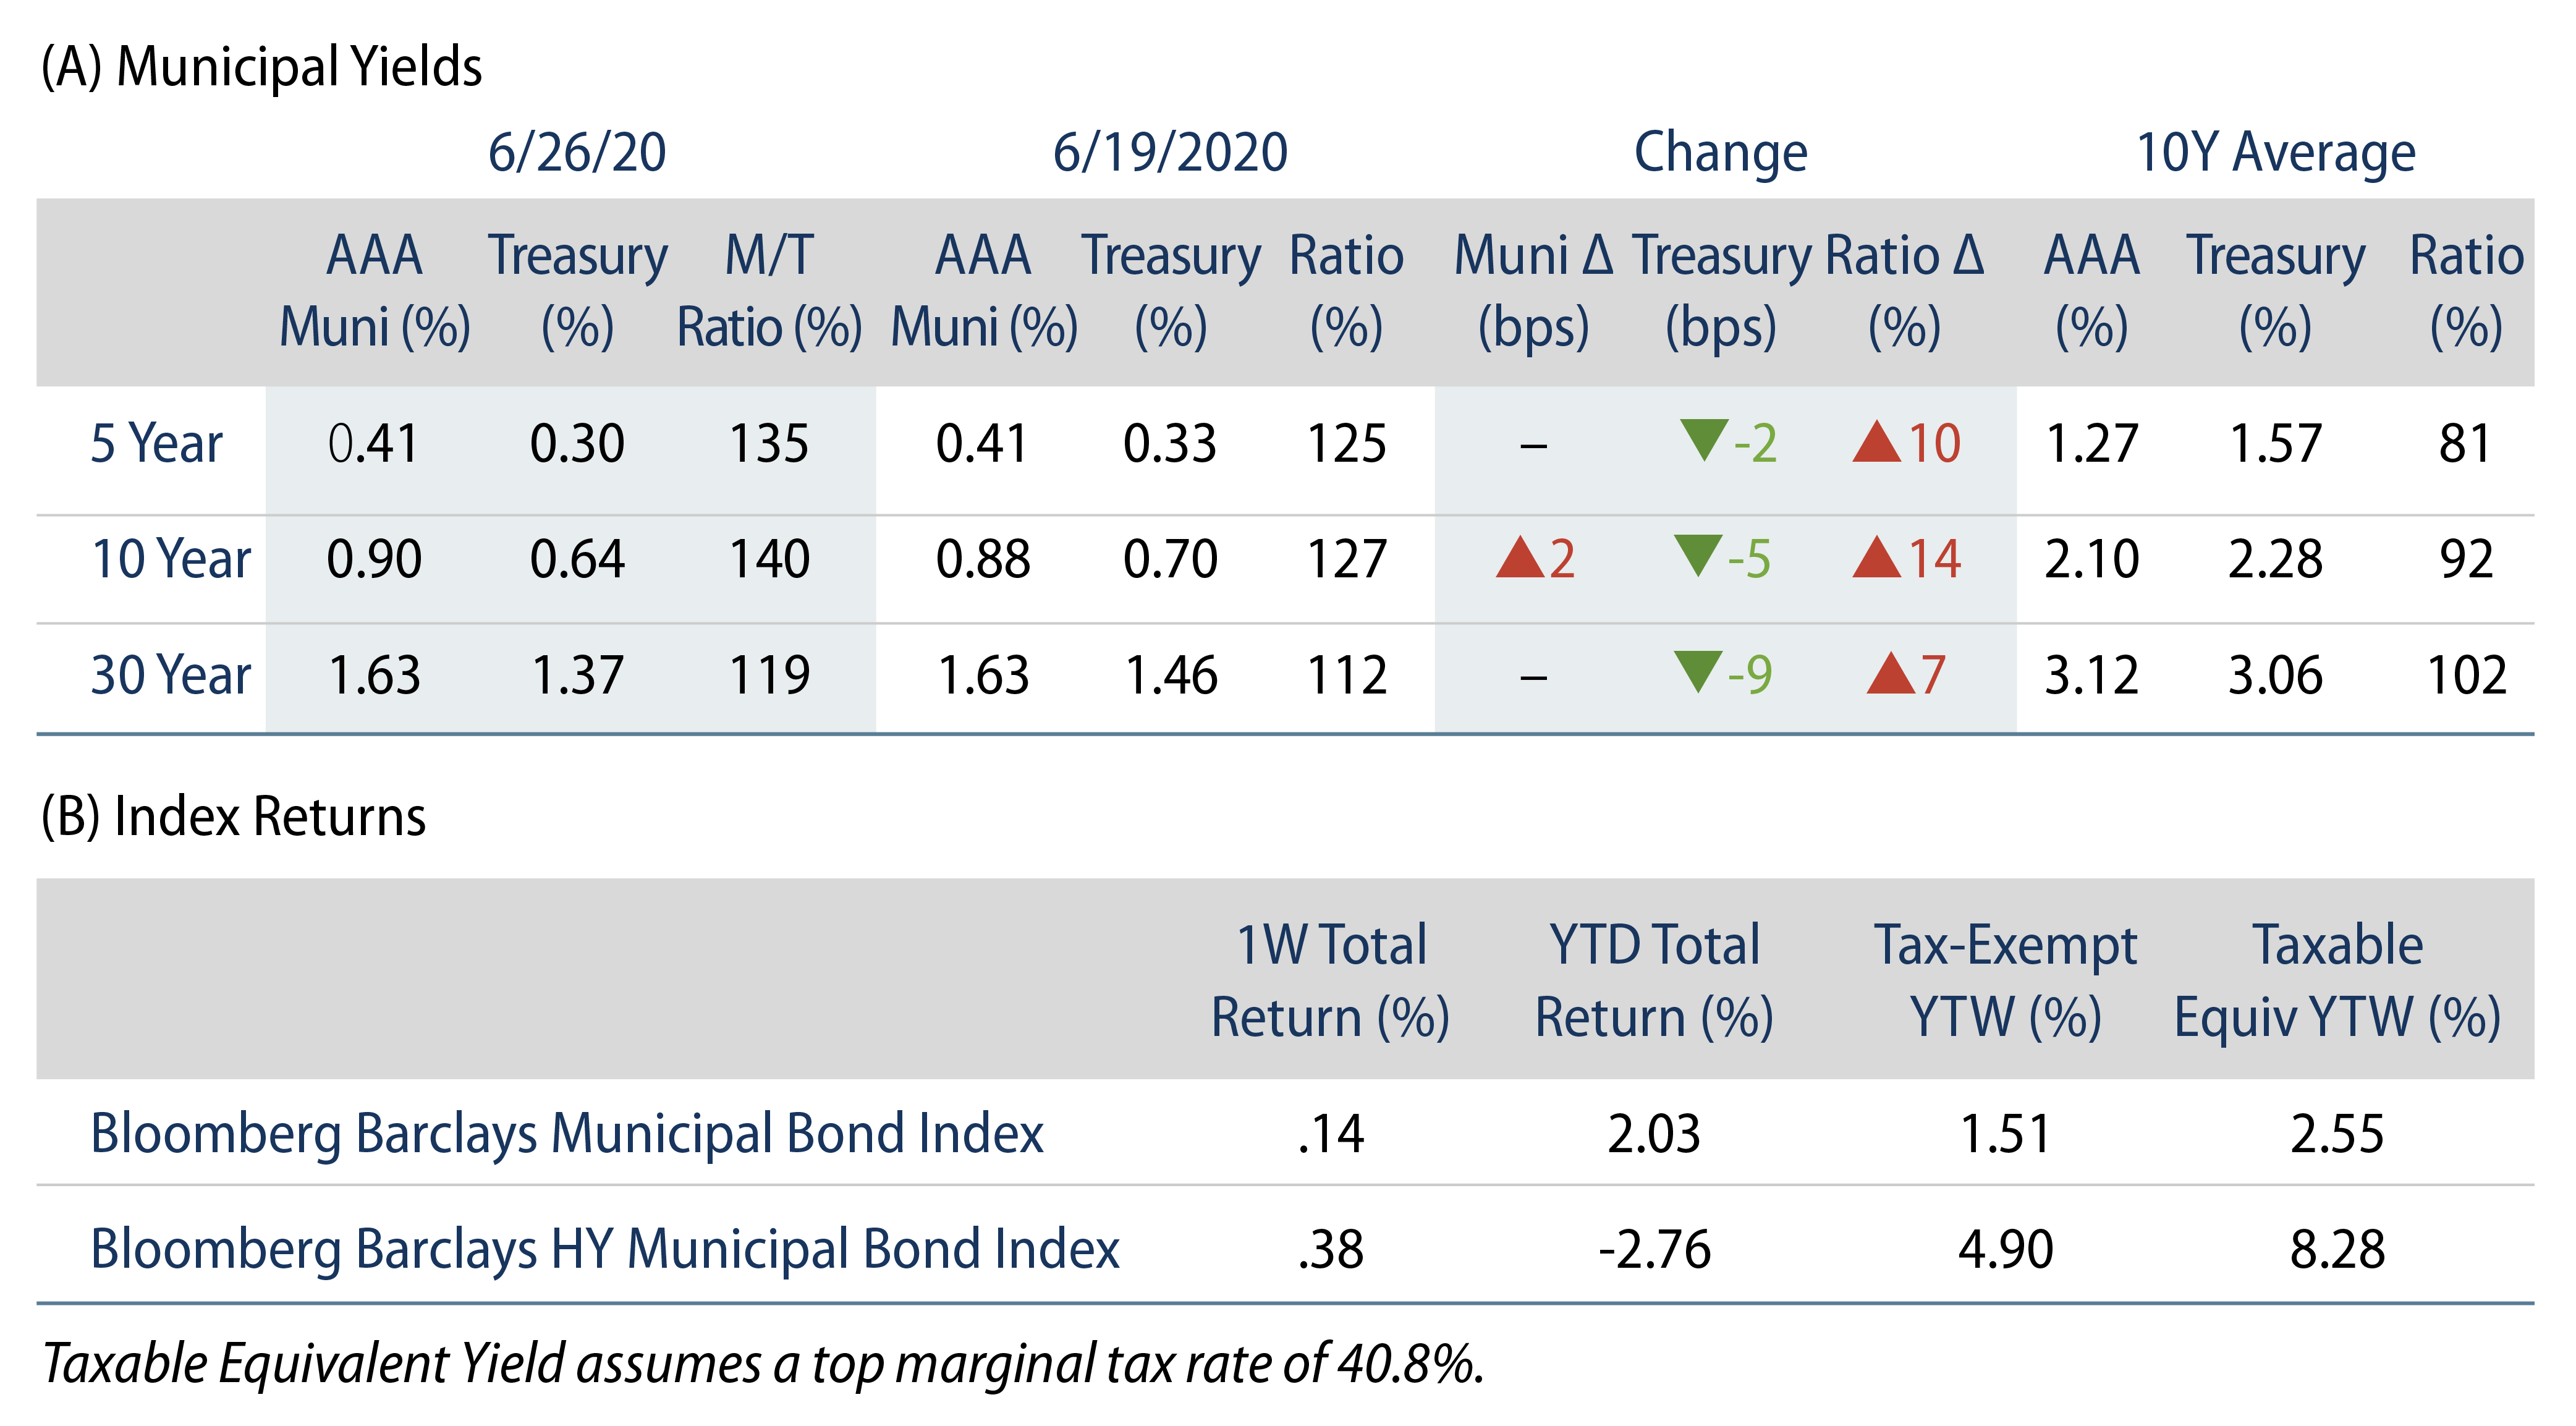 Explore Municipal Bond Yields and Index Returns